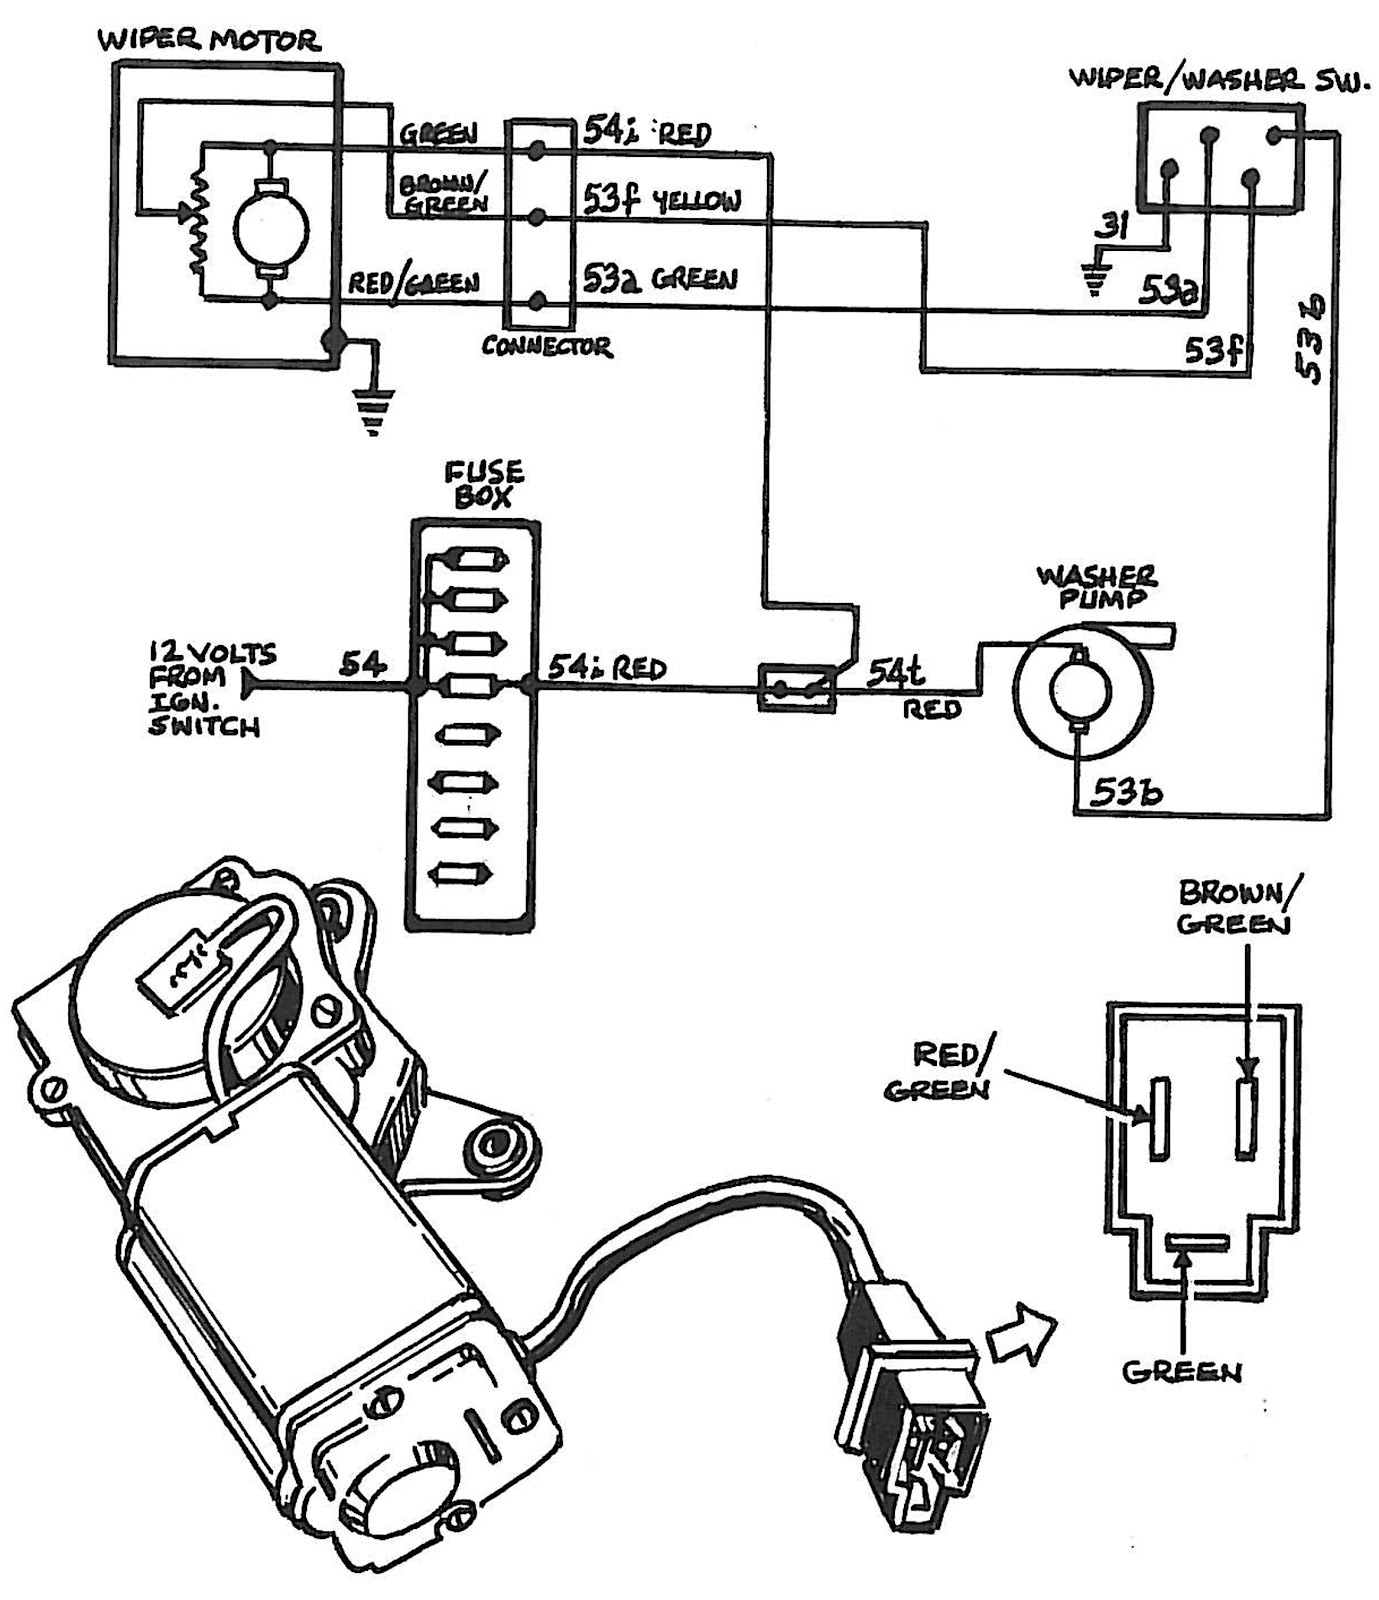 1989 E350 Fuel Problem together with Ford F 150 1995 Ford F150 95 F150 Pu Turns Over But No Fire also 2004 Chevy Tahoe Fuse Box Diagram together with P 0996b43f80394eaa further Ford Truck Technical Drawings And Schematics Section H Wiring. on mercedes ignition switch replacement